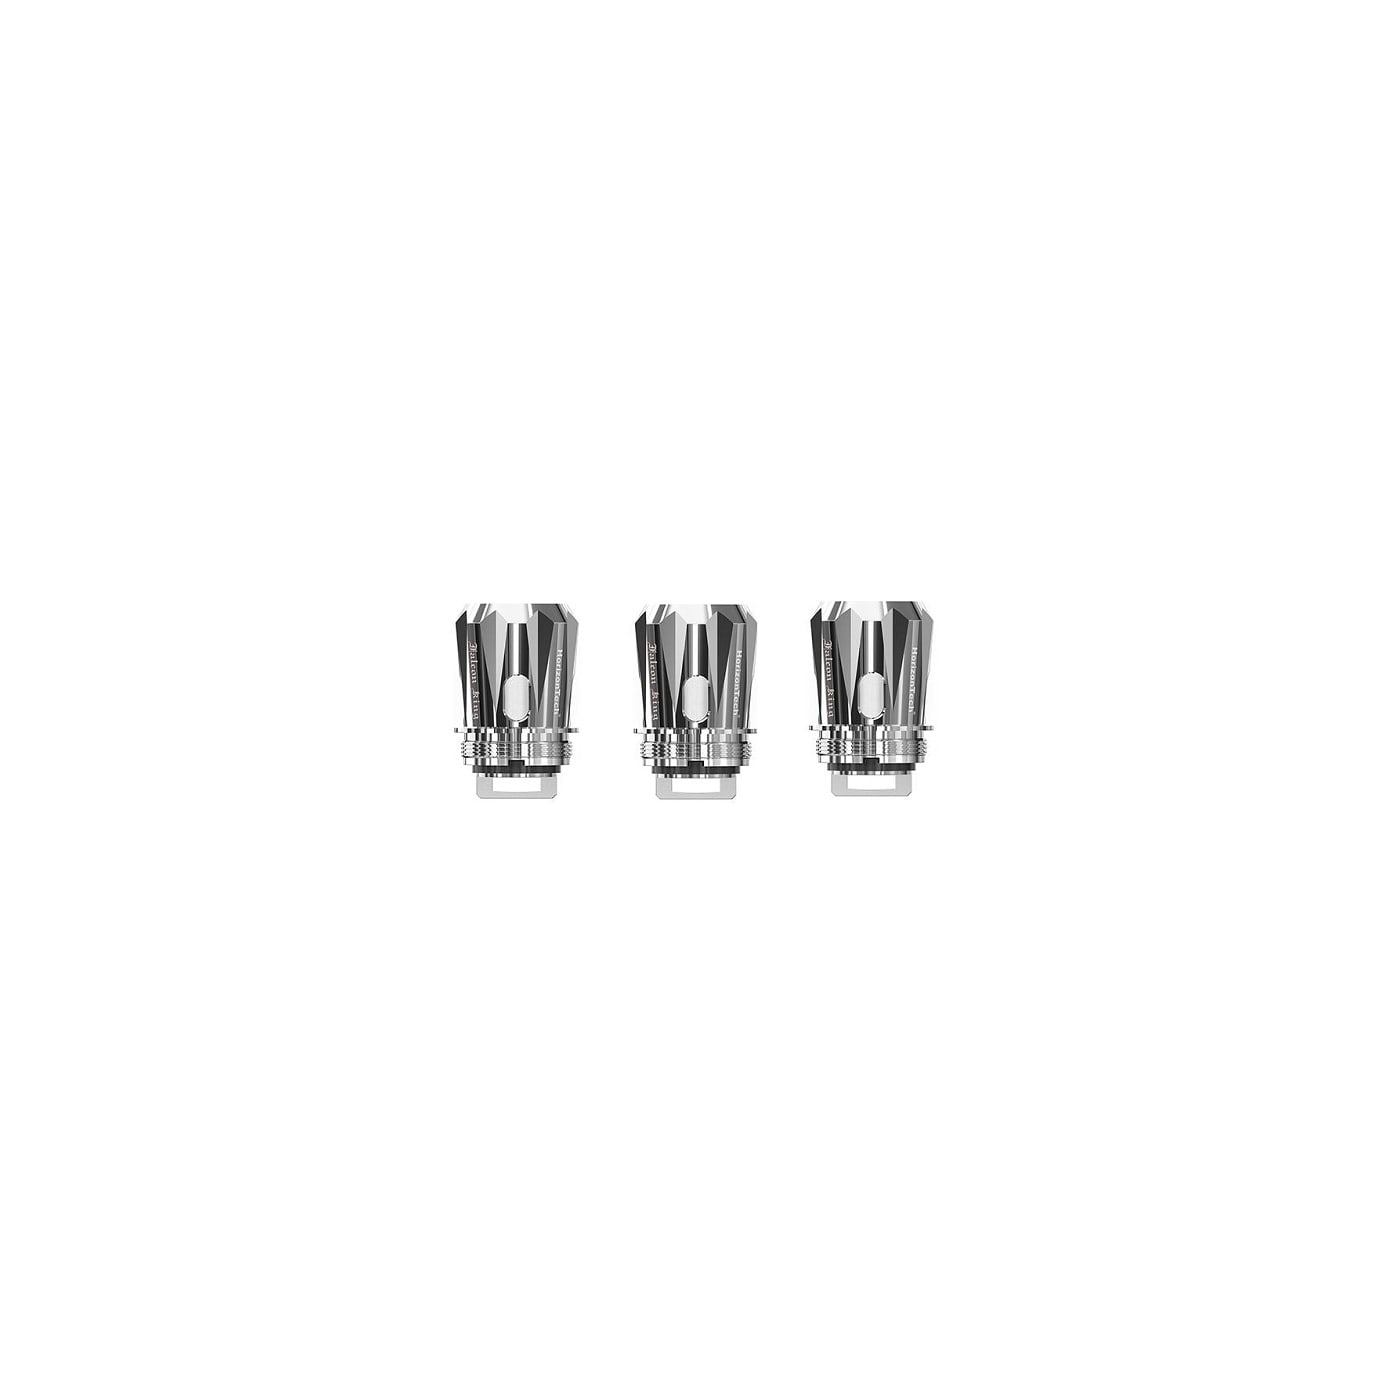 Horizon M1+ Mesh Replacement Coil - 3 Pack